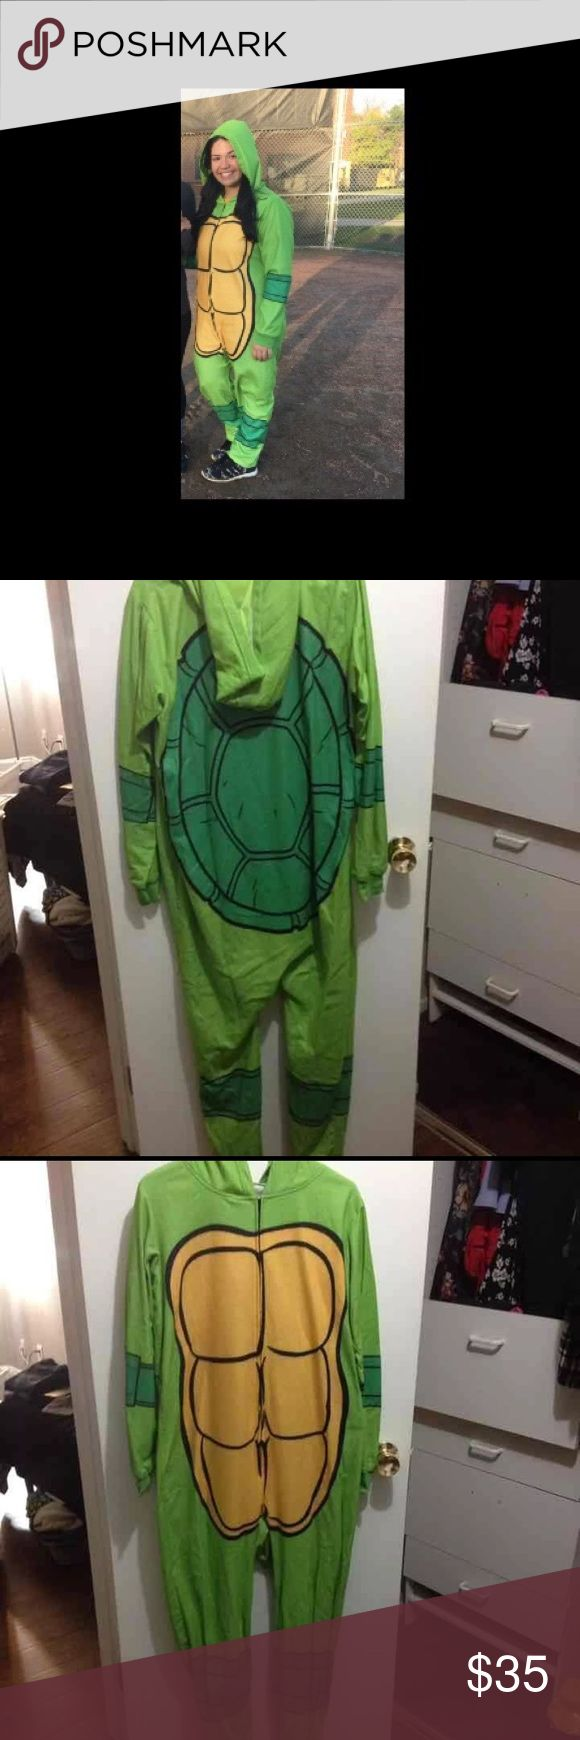 Nickelodeon Ninja Turtle Unisex Onesie Worn but good condition! Size M/L Nickelodeon Intimates & Sleepwear